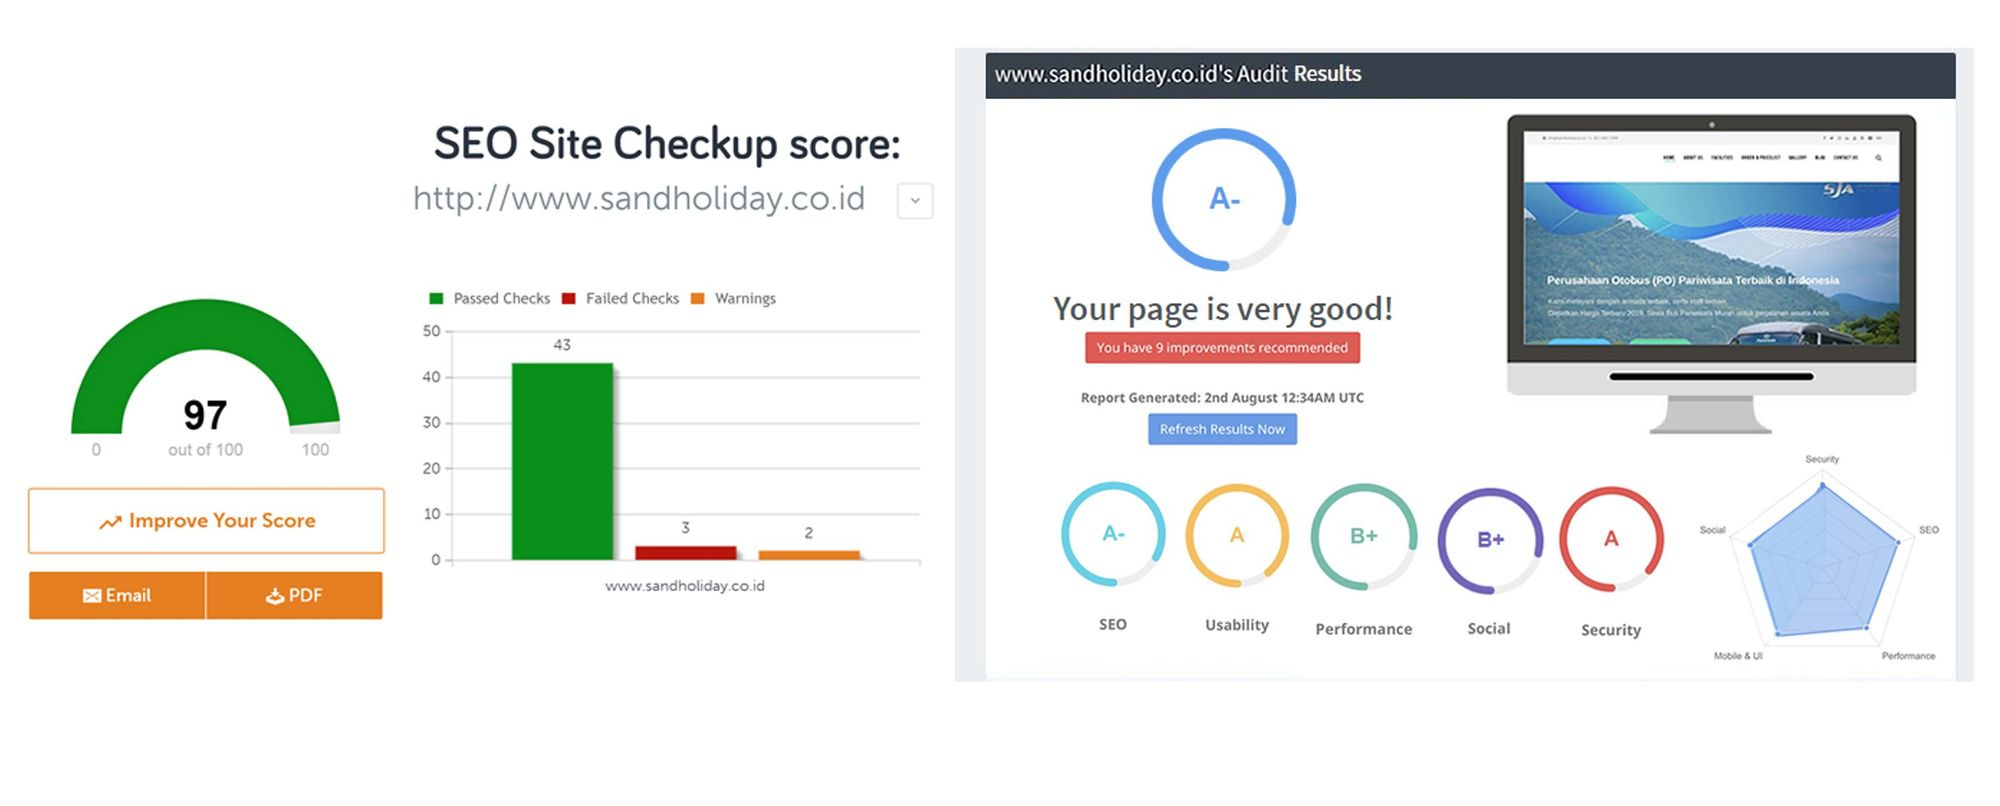 SEO Site Checkup Score - On-page SEO Audit - Jasa SEO Terbaik - Arfadia